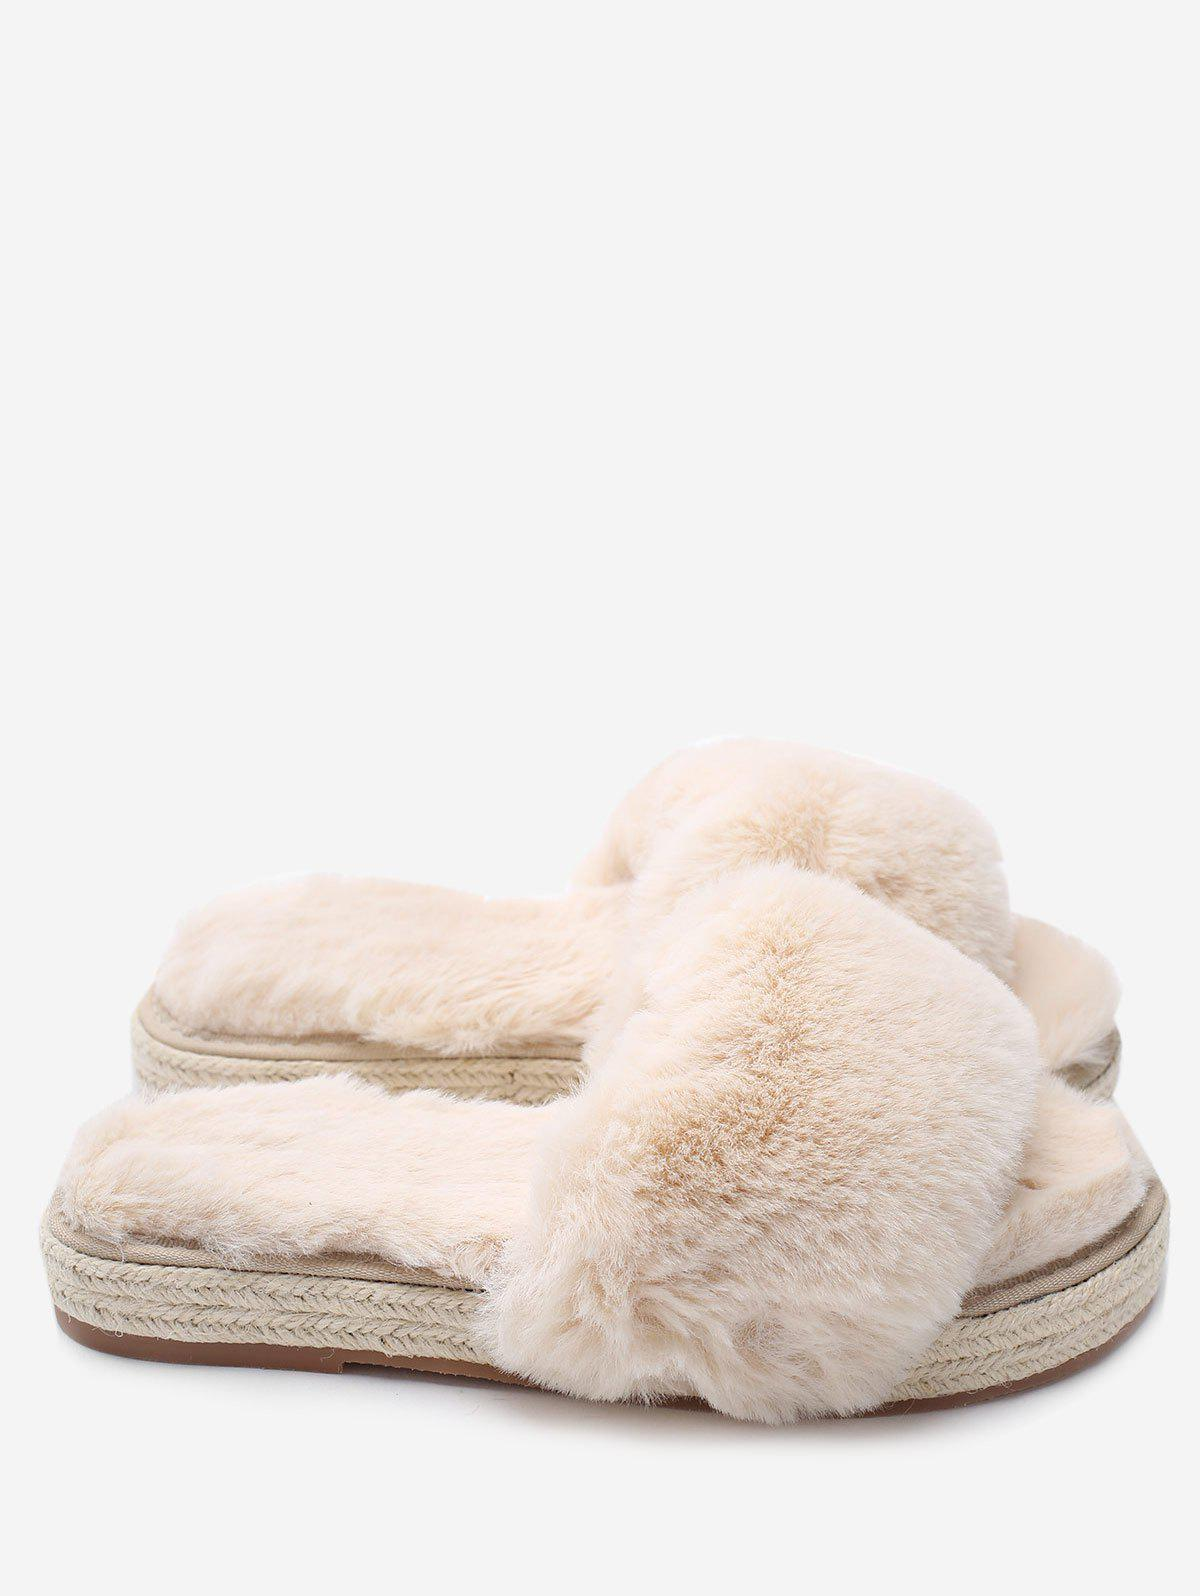 Espadrille Sole Faux Fur Slippers - APRICOT 37